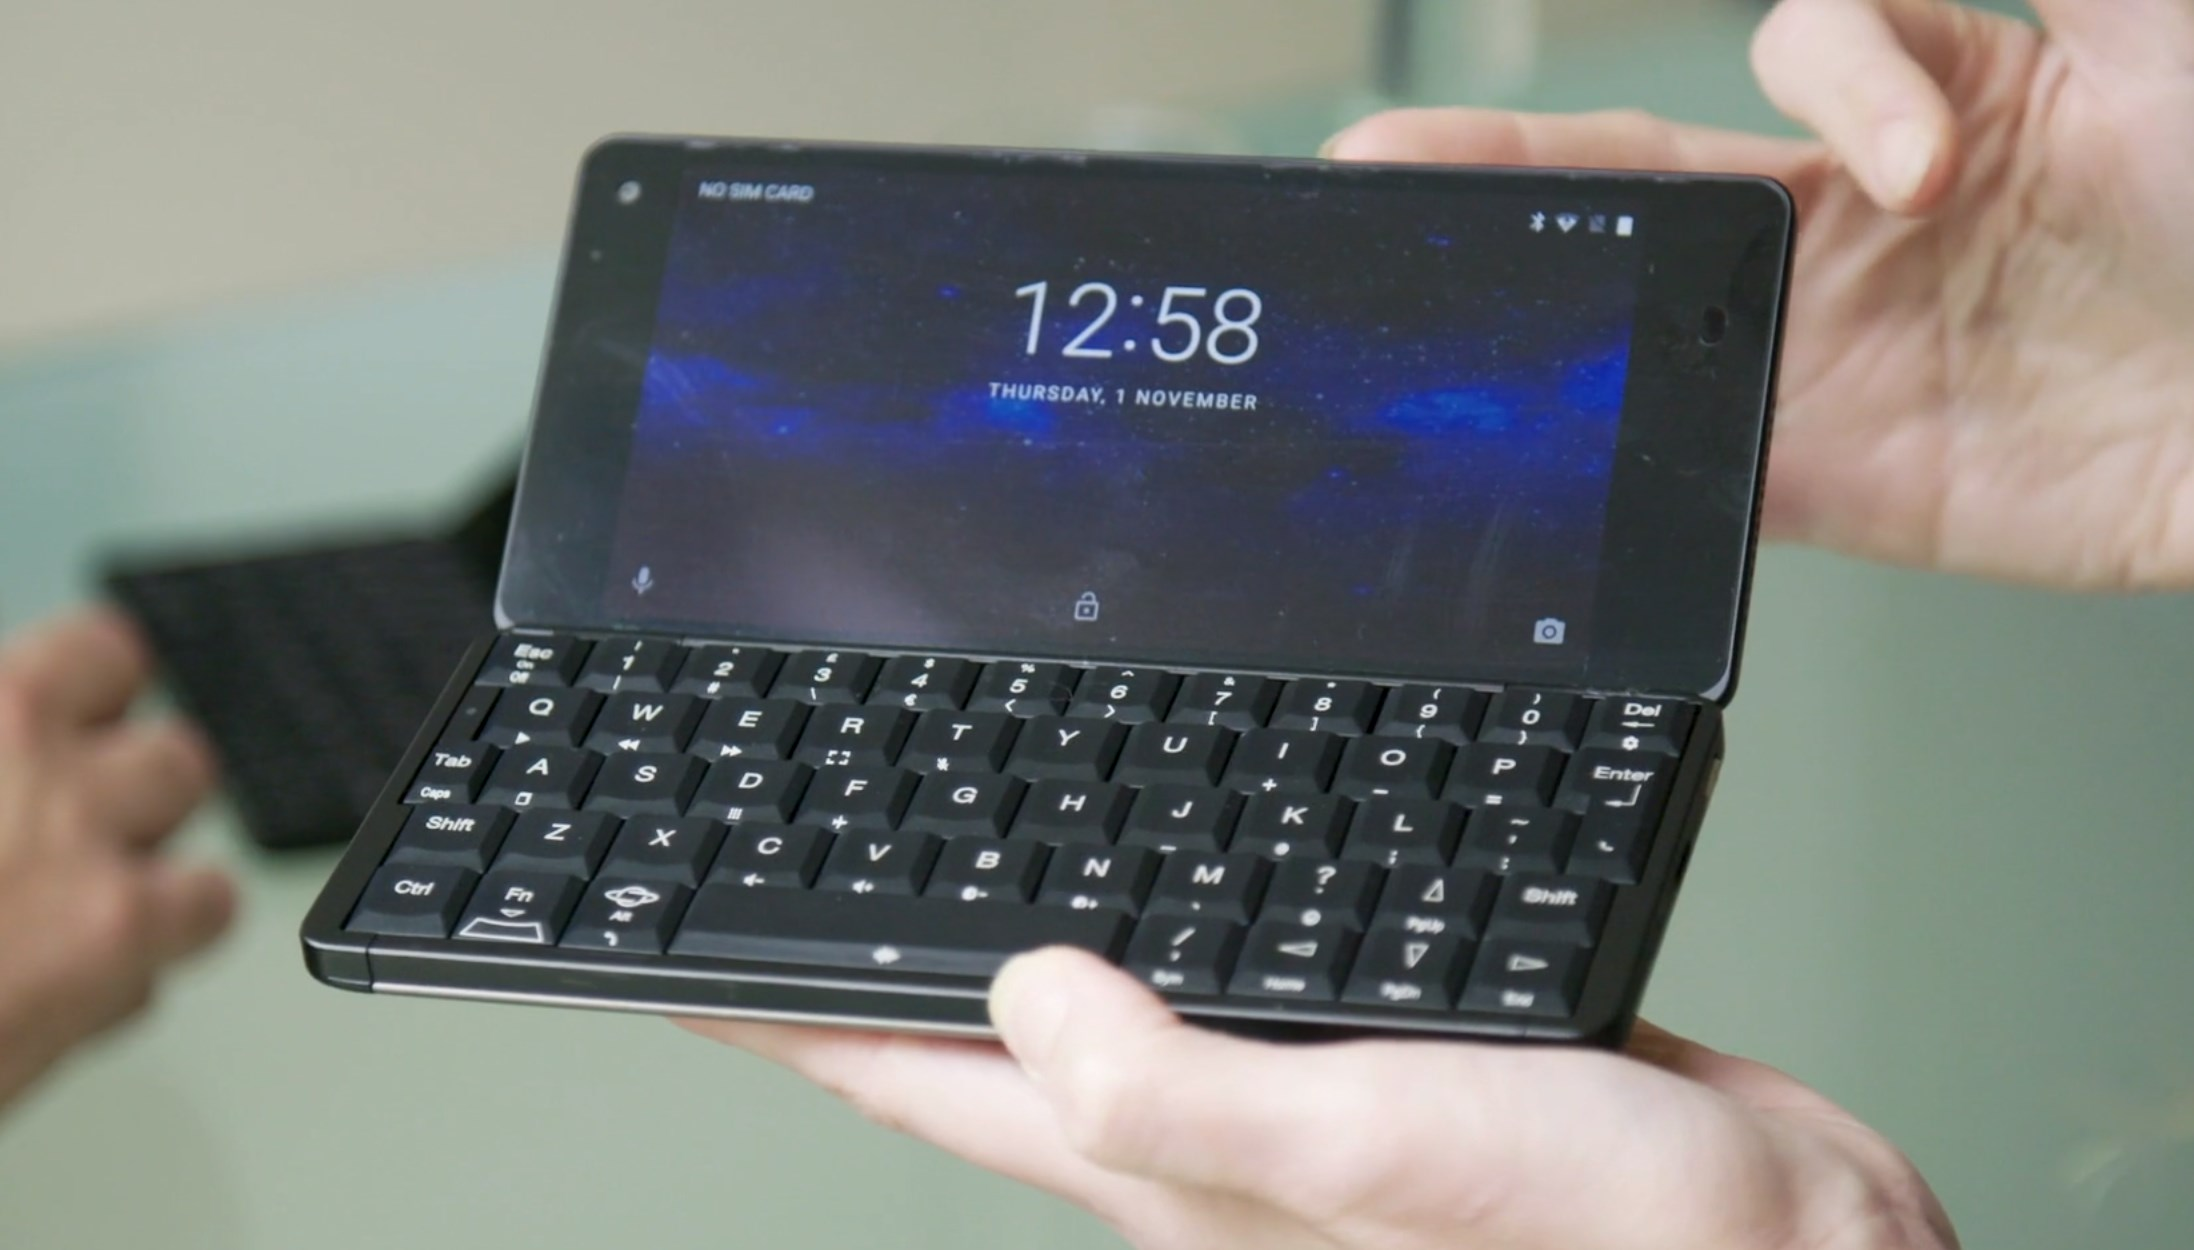 Laptop-phone Cosmo Communicator hits 350% of crowdfunding goal